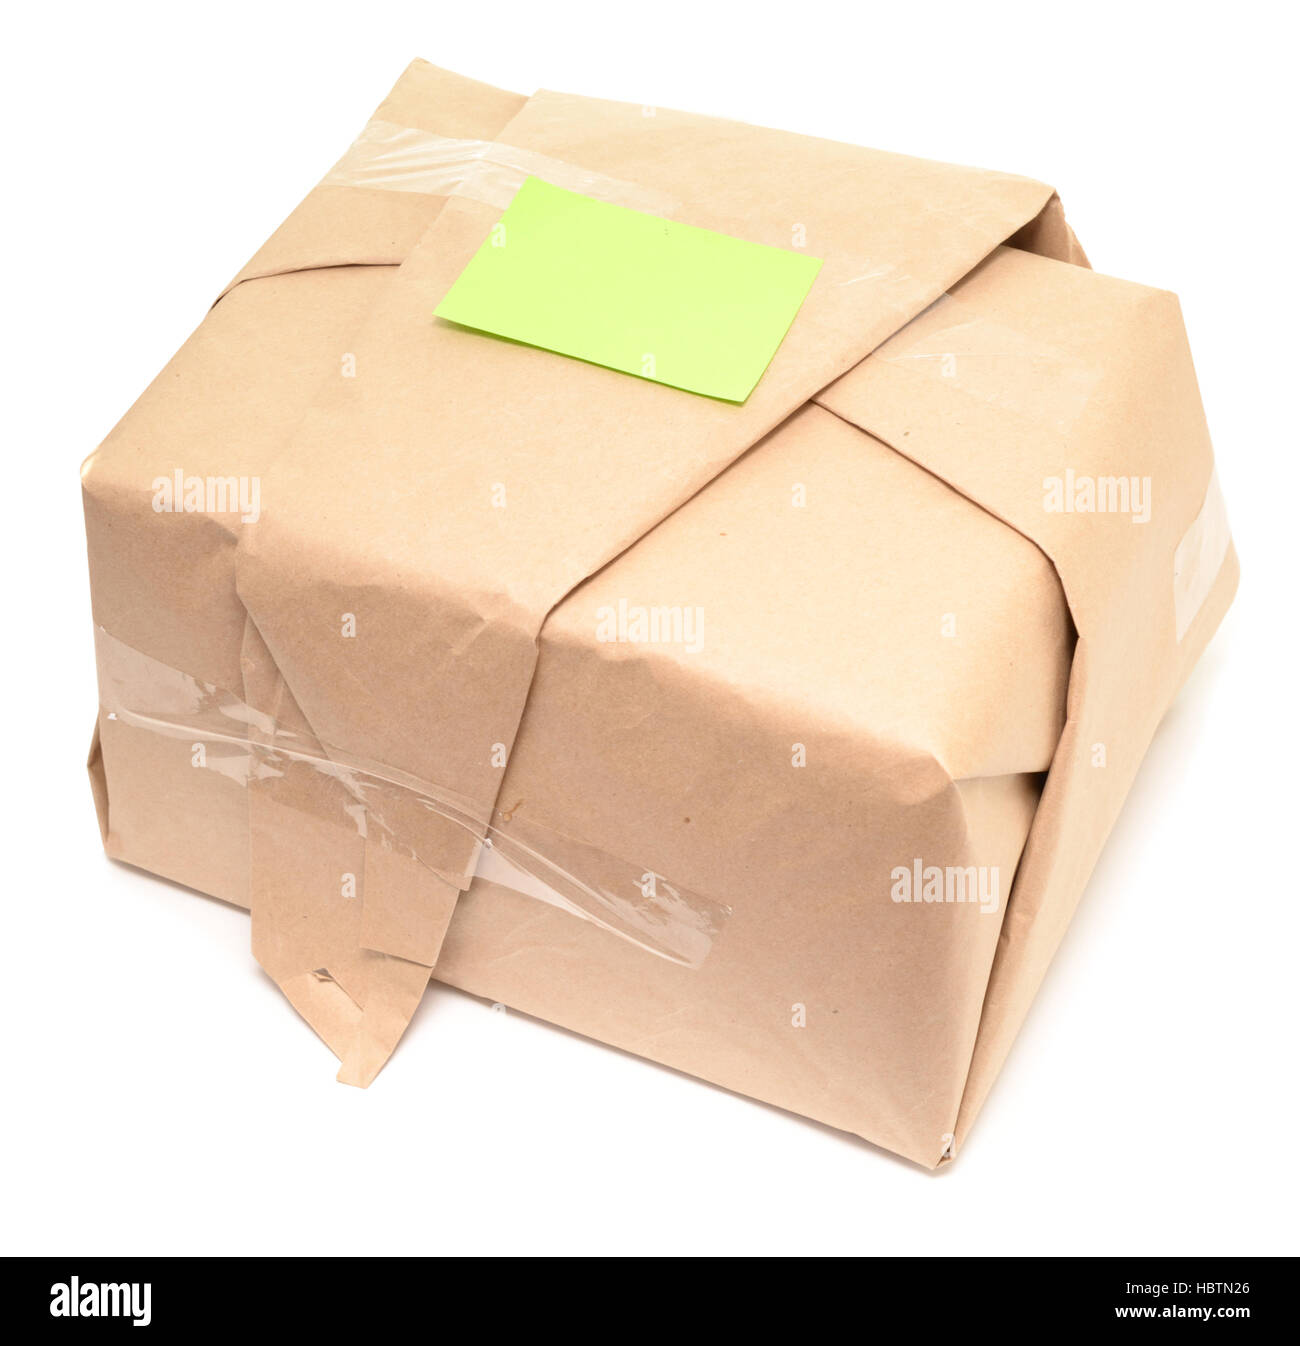 shipping box - Stock Image